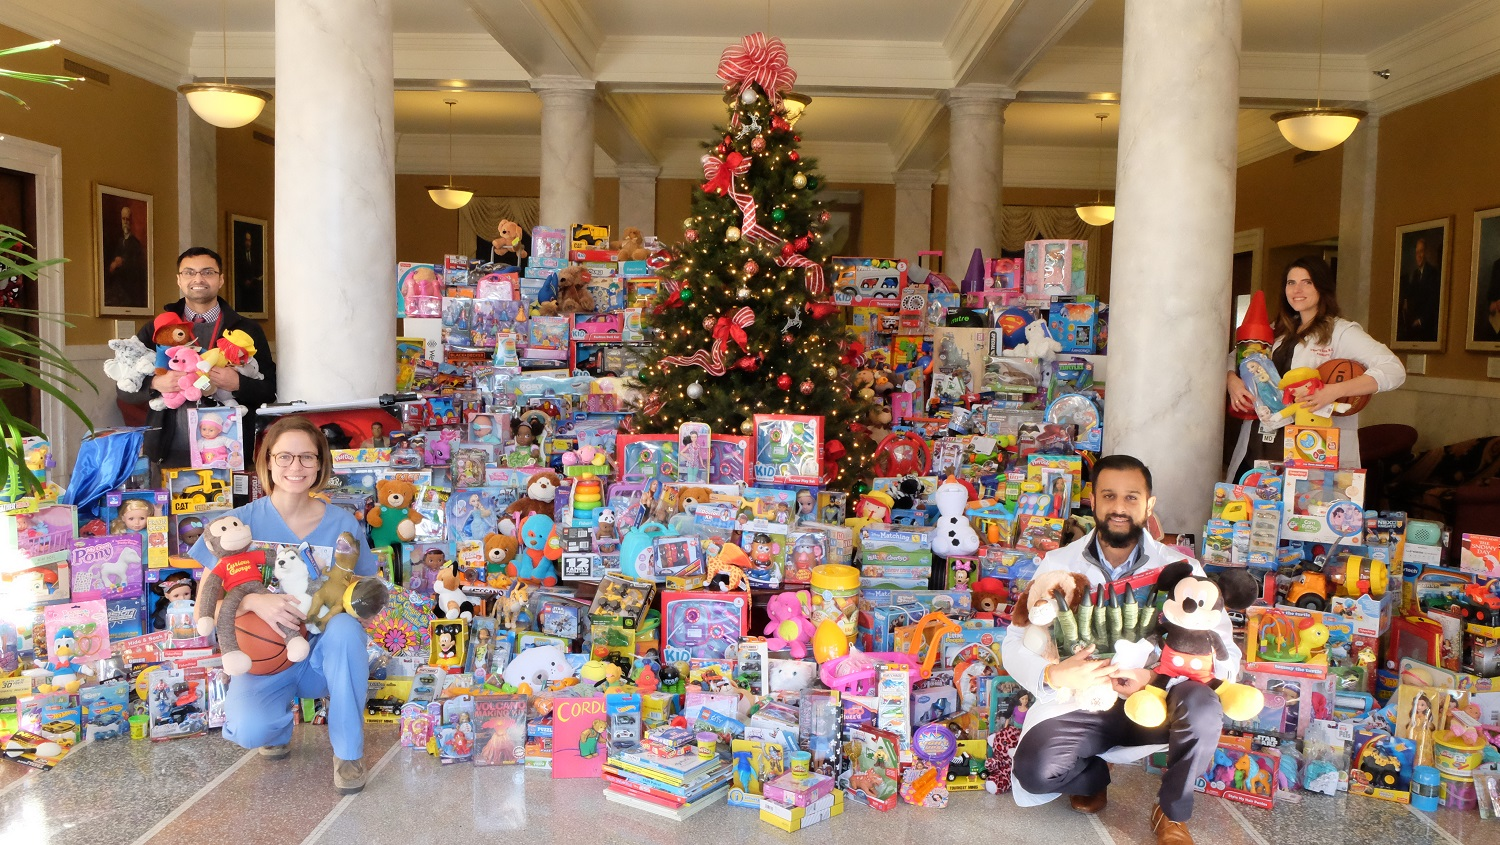 Toys For Tots Community : Toys for tots drive by uofl medical residents brings in